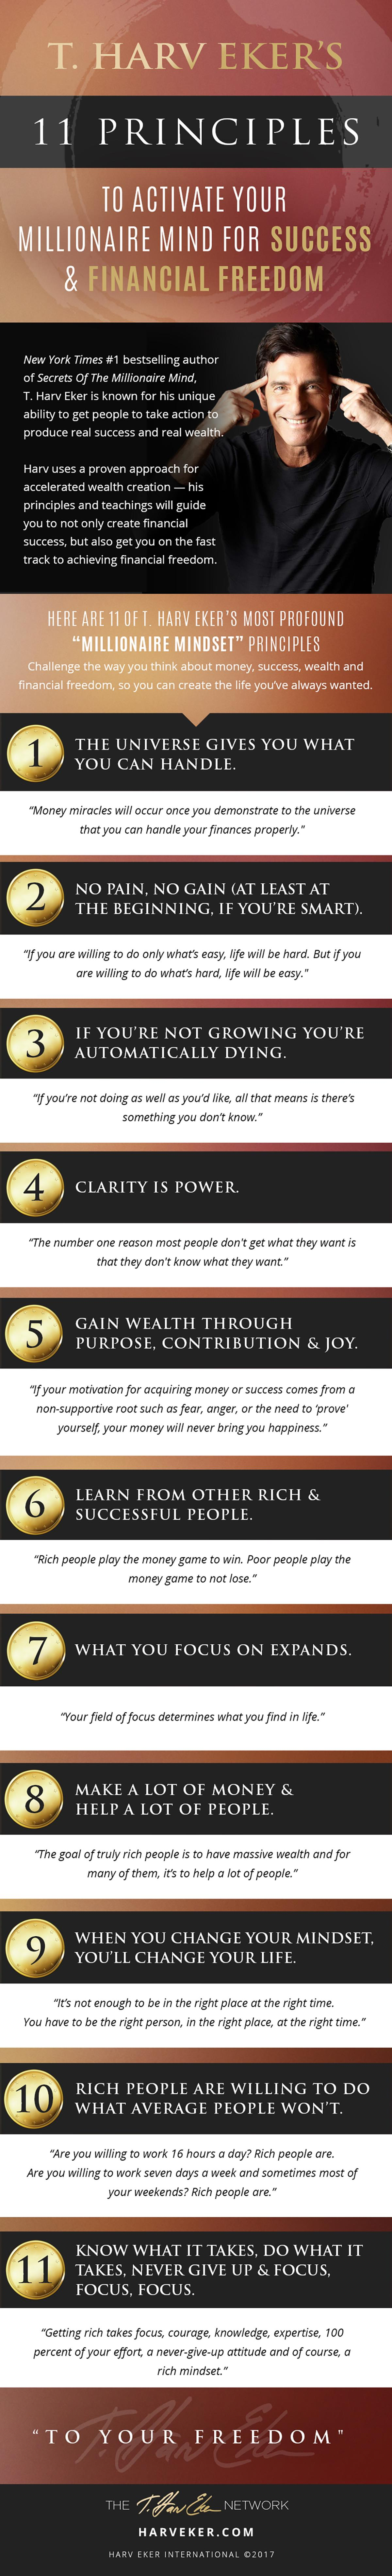 11 Principles To Activate Your Millionaire Mind For Success & Financial Freedom